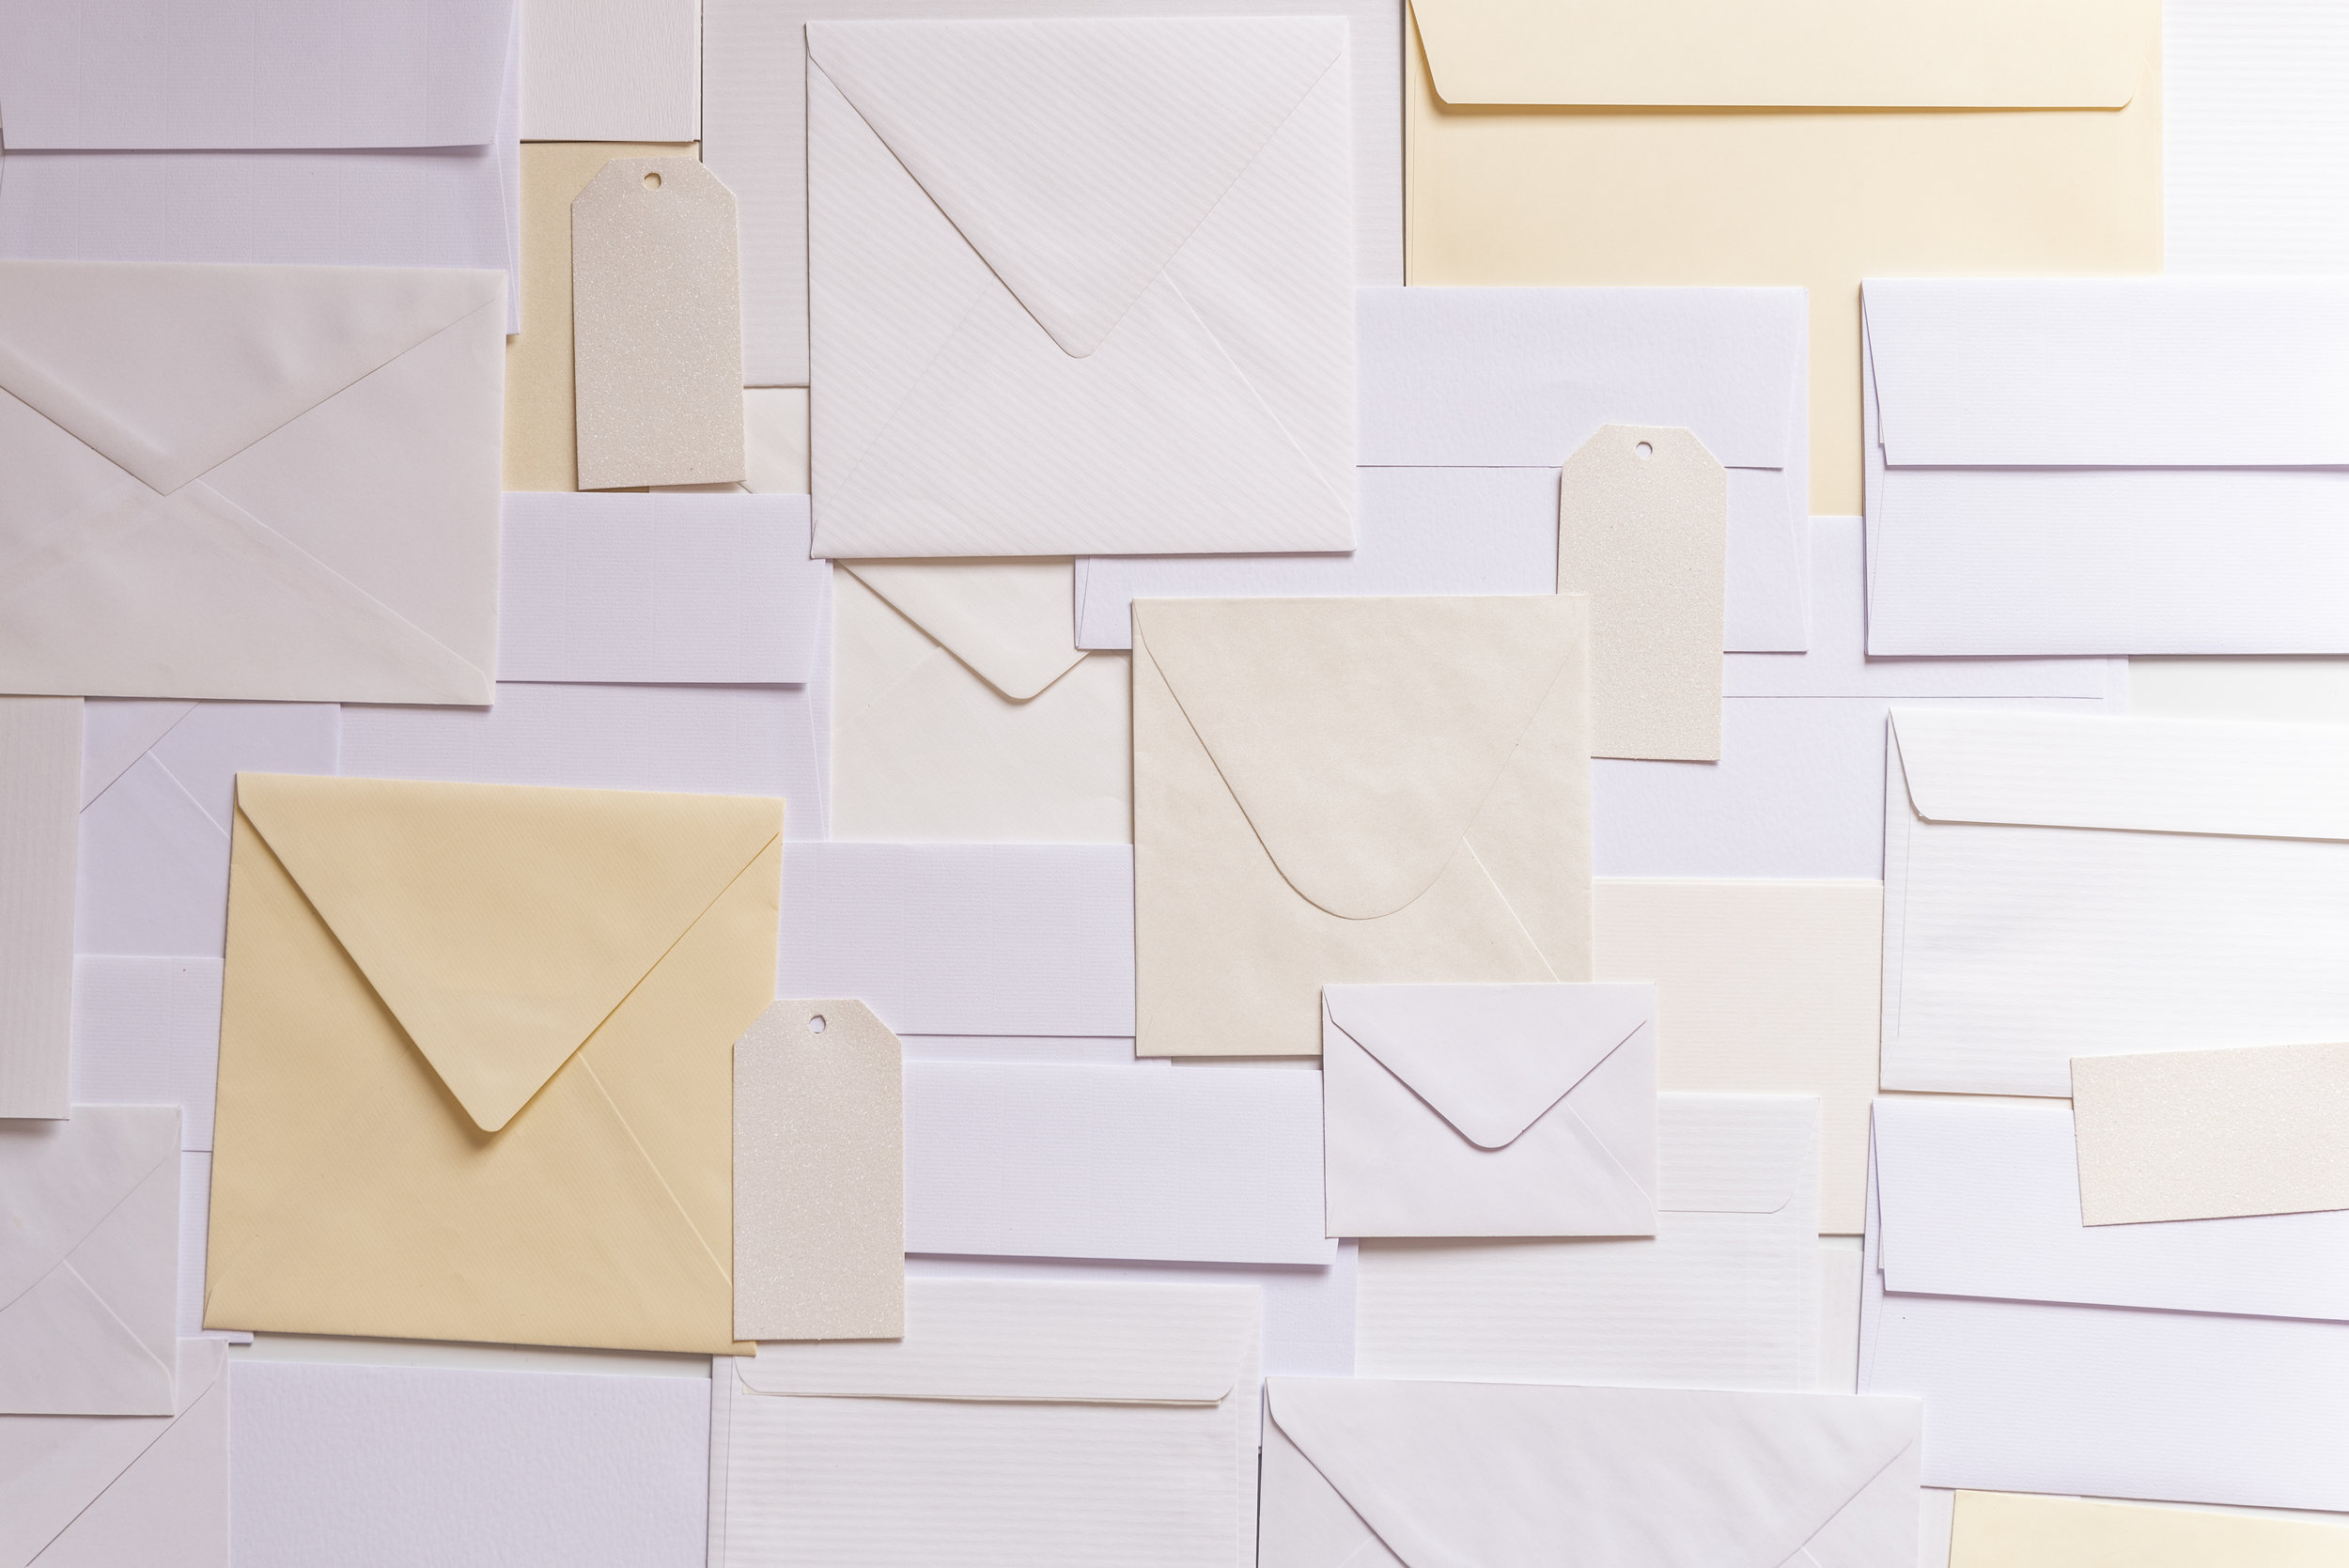 You've got mail - Join one of our contributor mailing lists to get opportunities in your inbox!